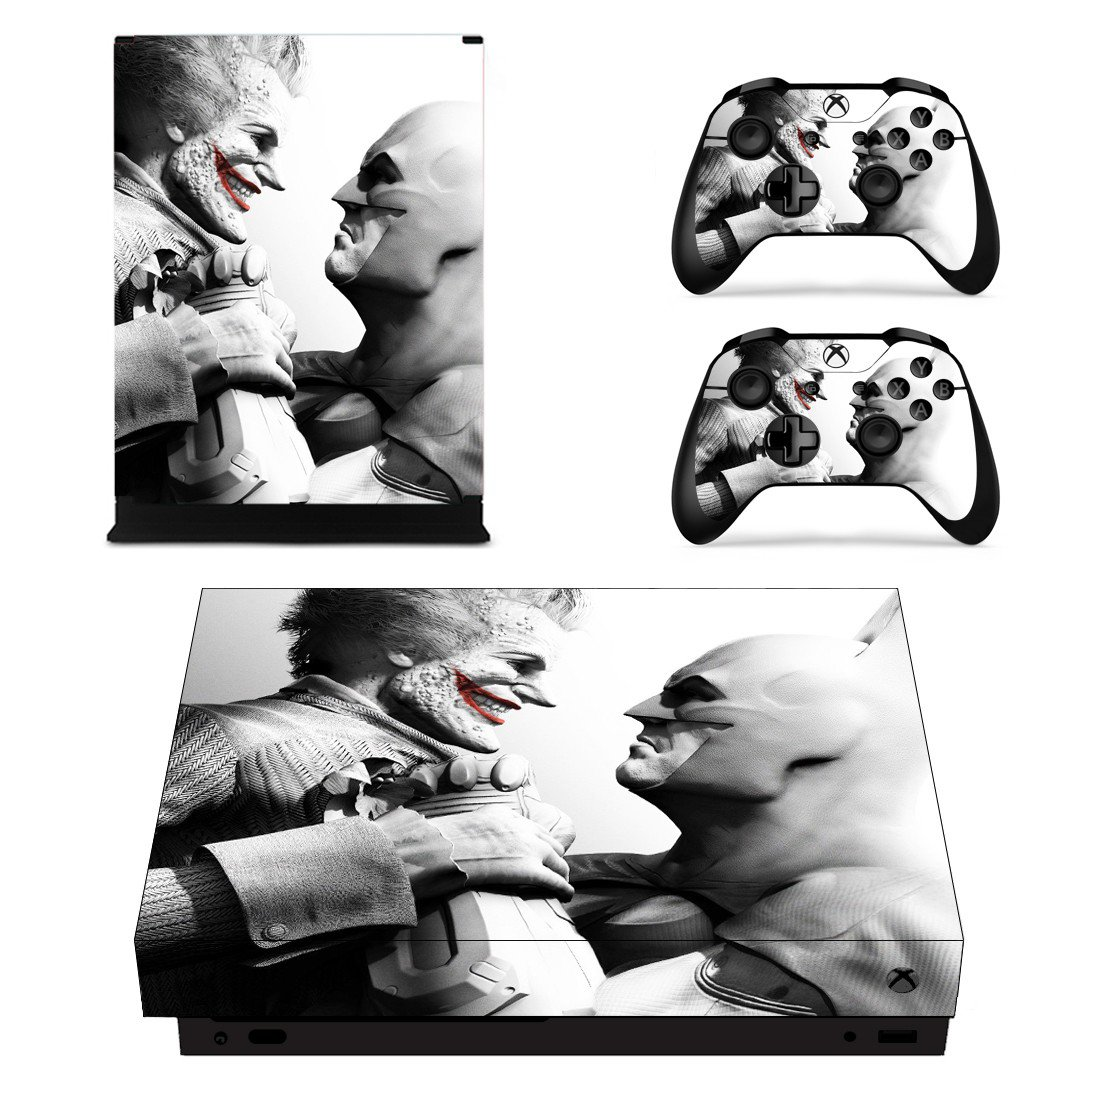 Batman and Joker decal skin sticker for Xbox One X console and controllers